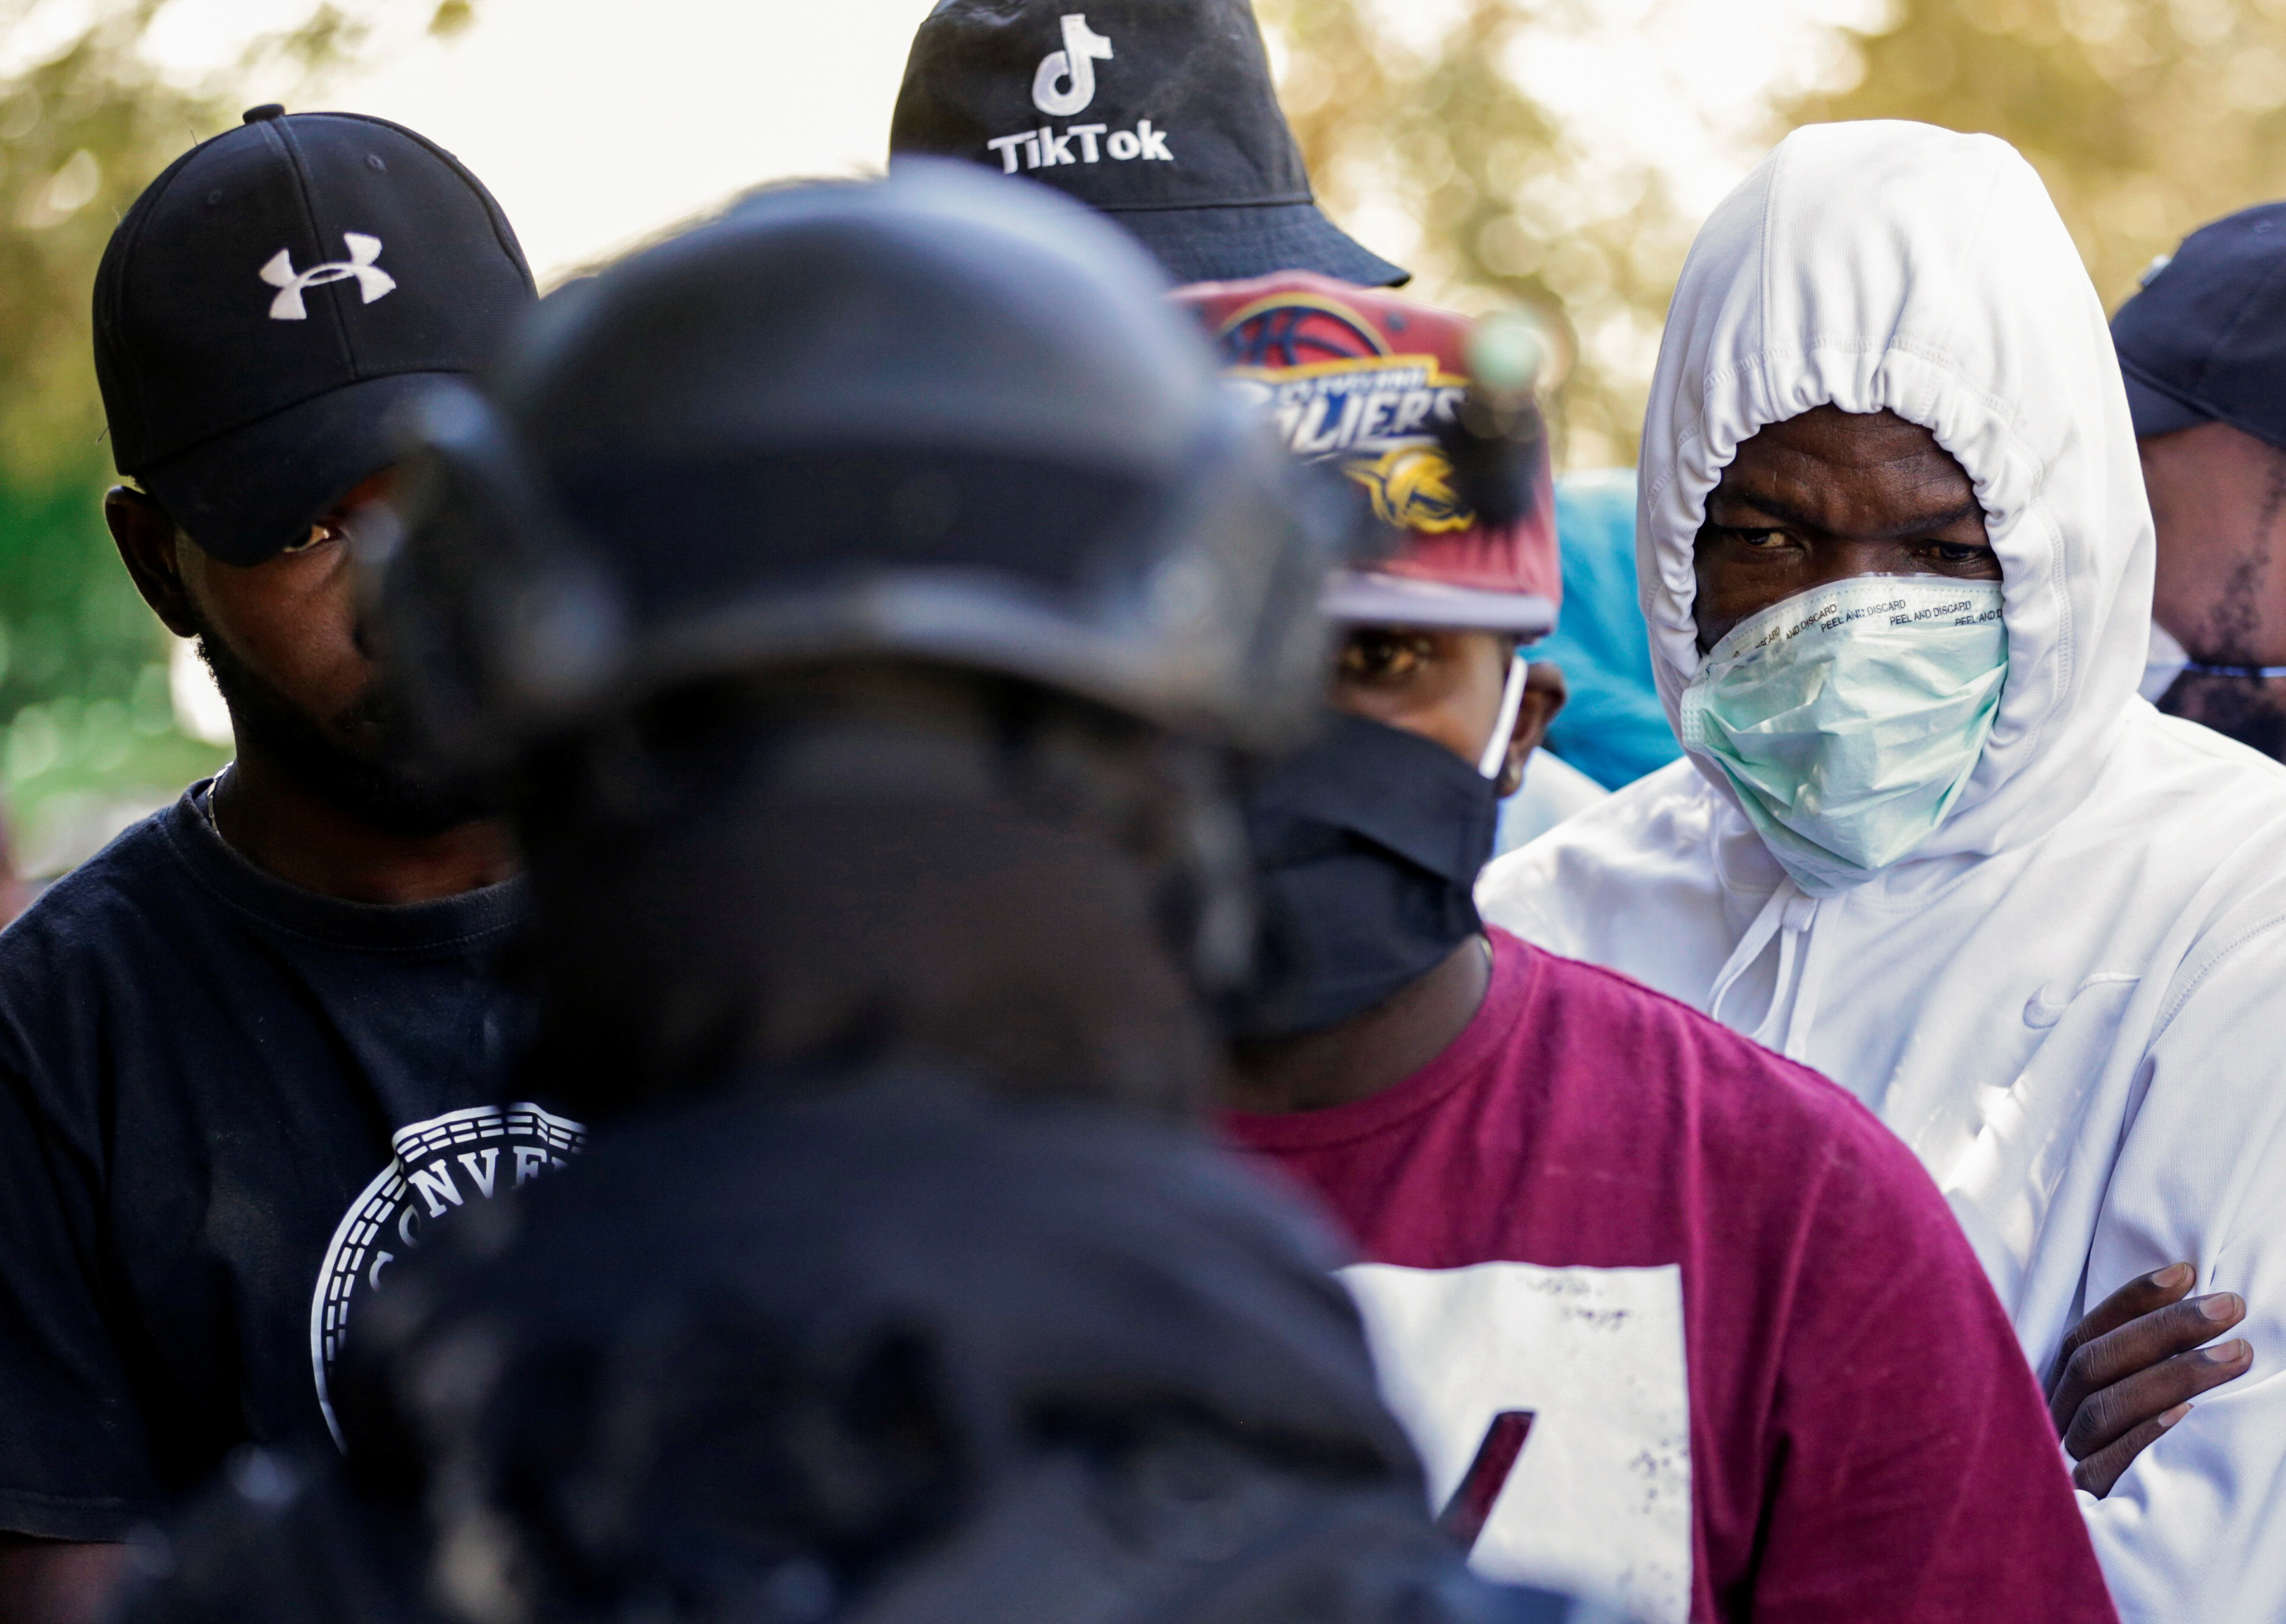 Migrants speak with a Mexican police officer in a makeshift camp at Braulio Fernandez Ecological Park near the border with the U.S., in Ciudad Acuna, Mexico, September 24, 2021. REUTERS/Daniel Becerril